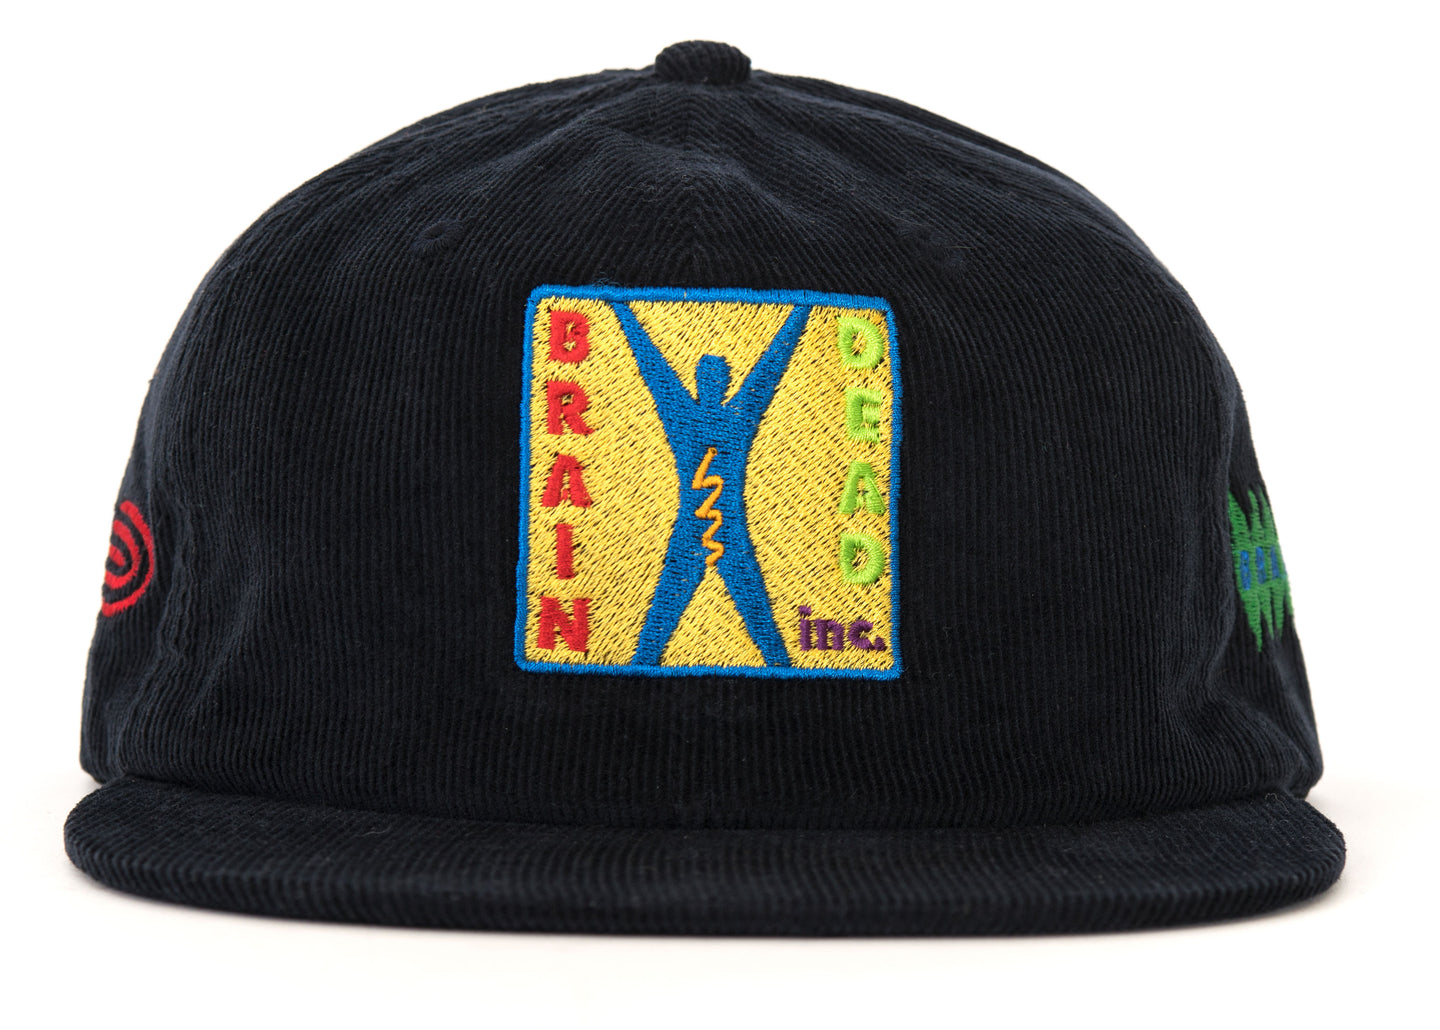 START UP CORDUROY HAT - NAVY